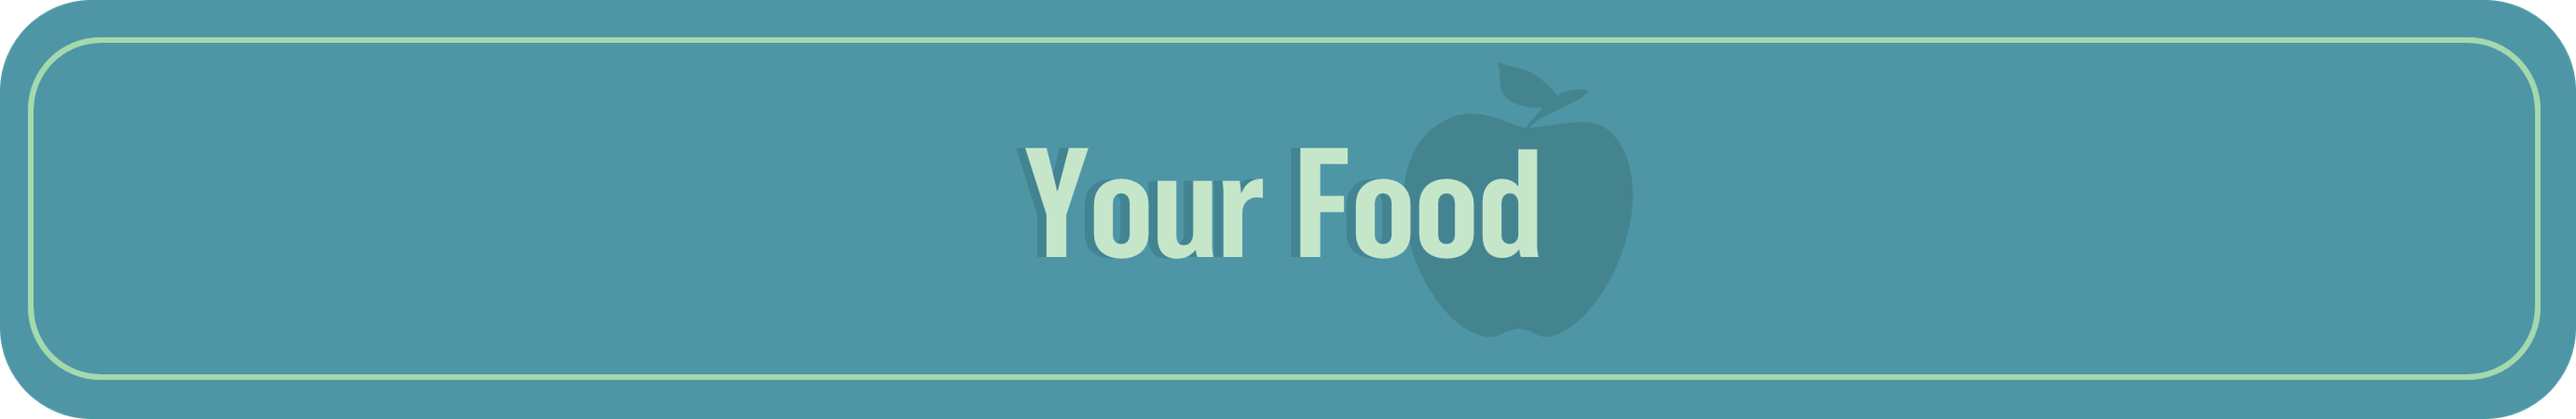 teal banner with light green text reading your food with drop shadow illustration of an apple